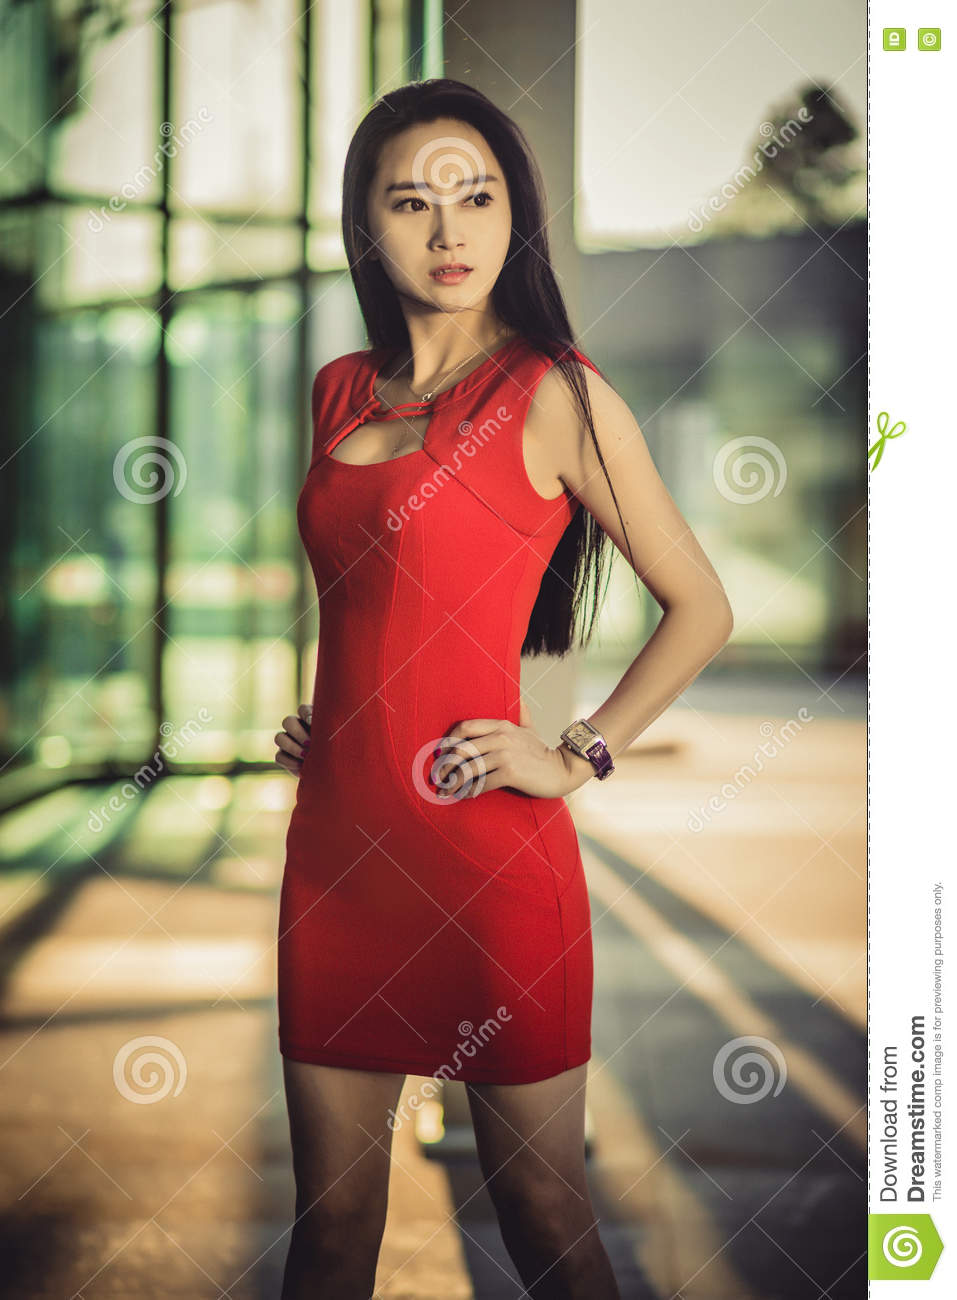 Red Girls Vancouver Escort